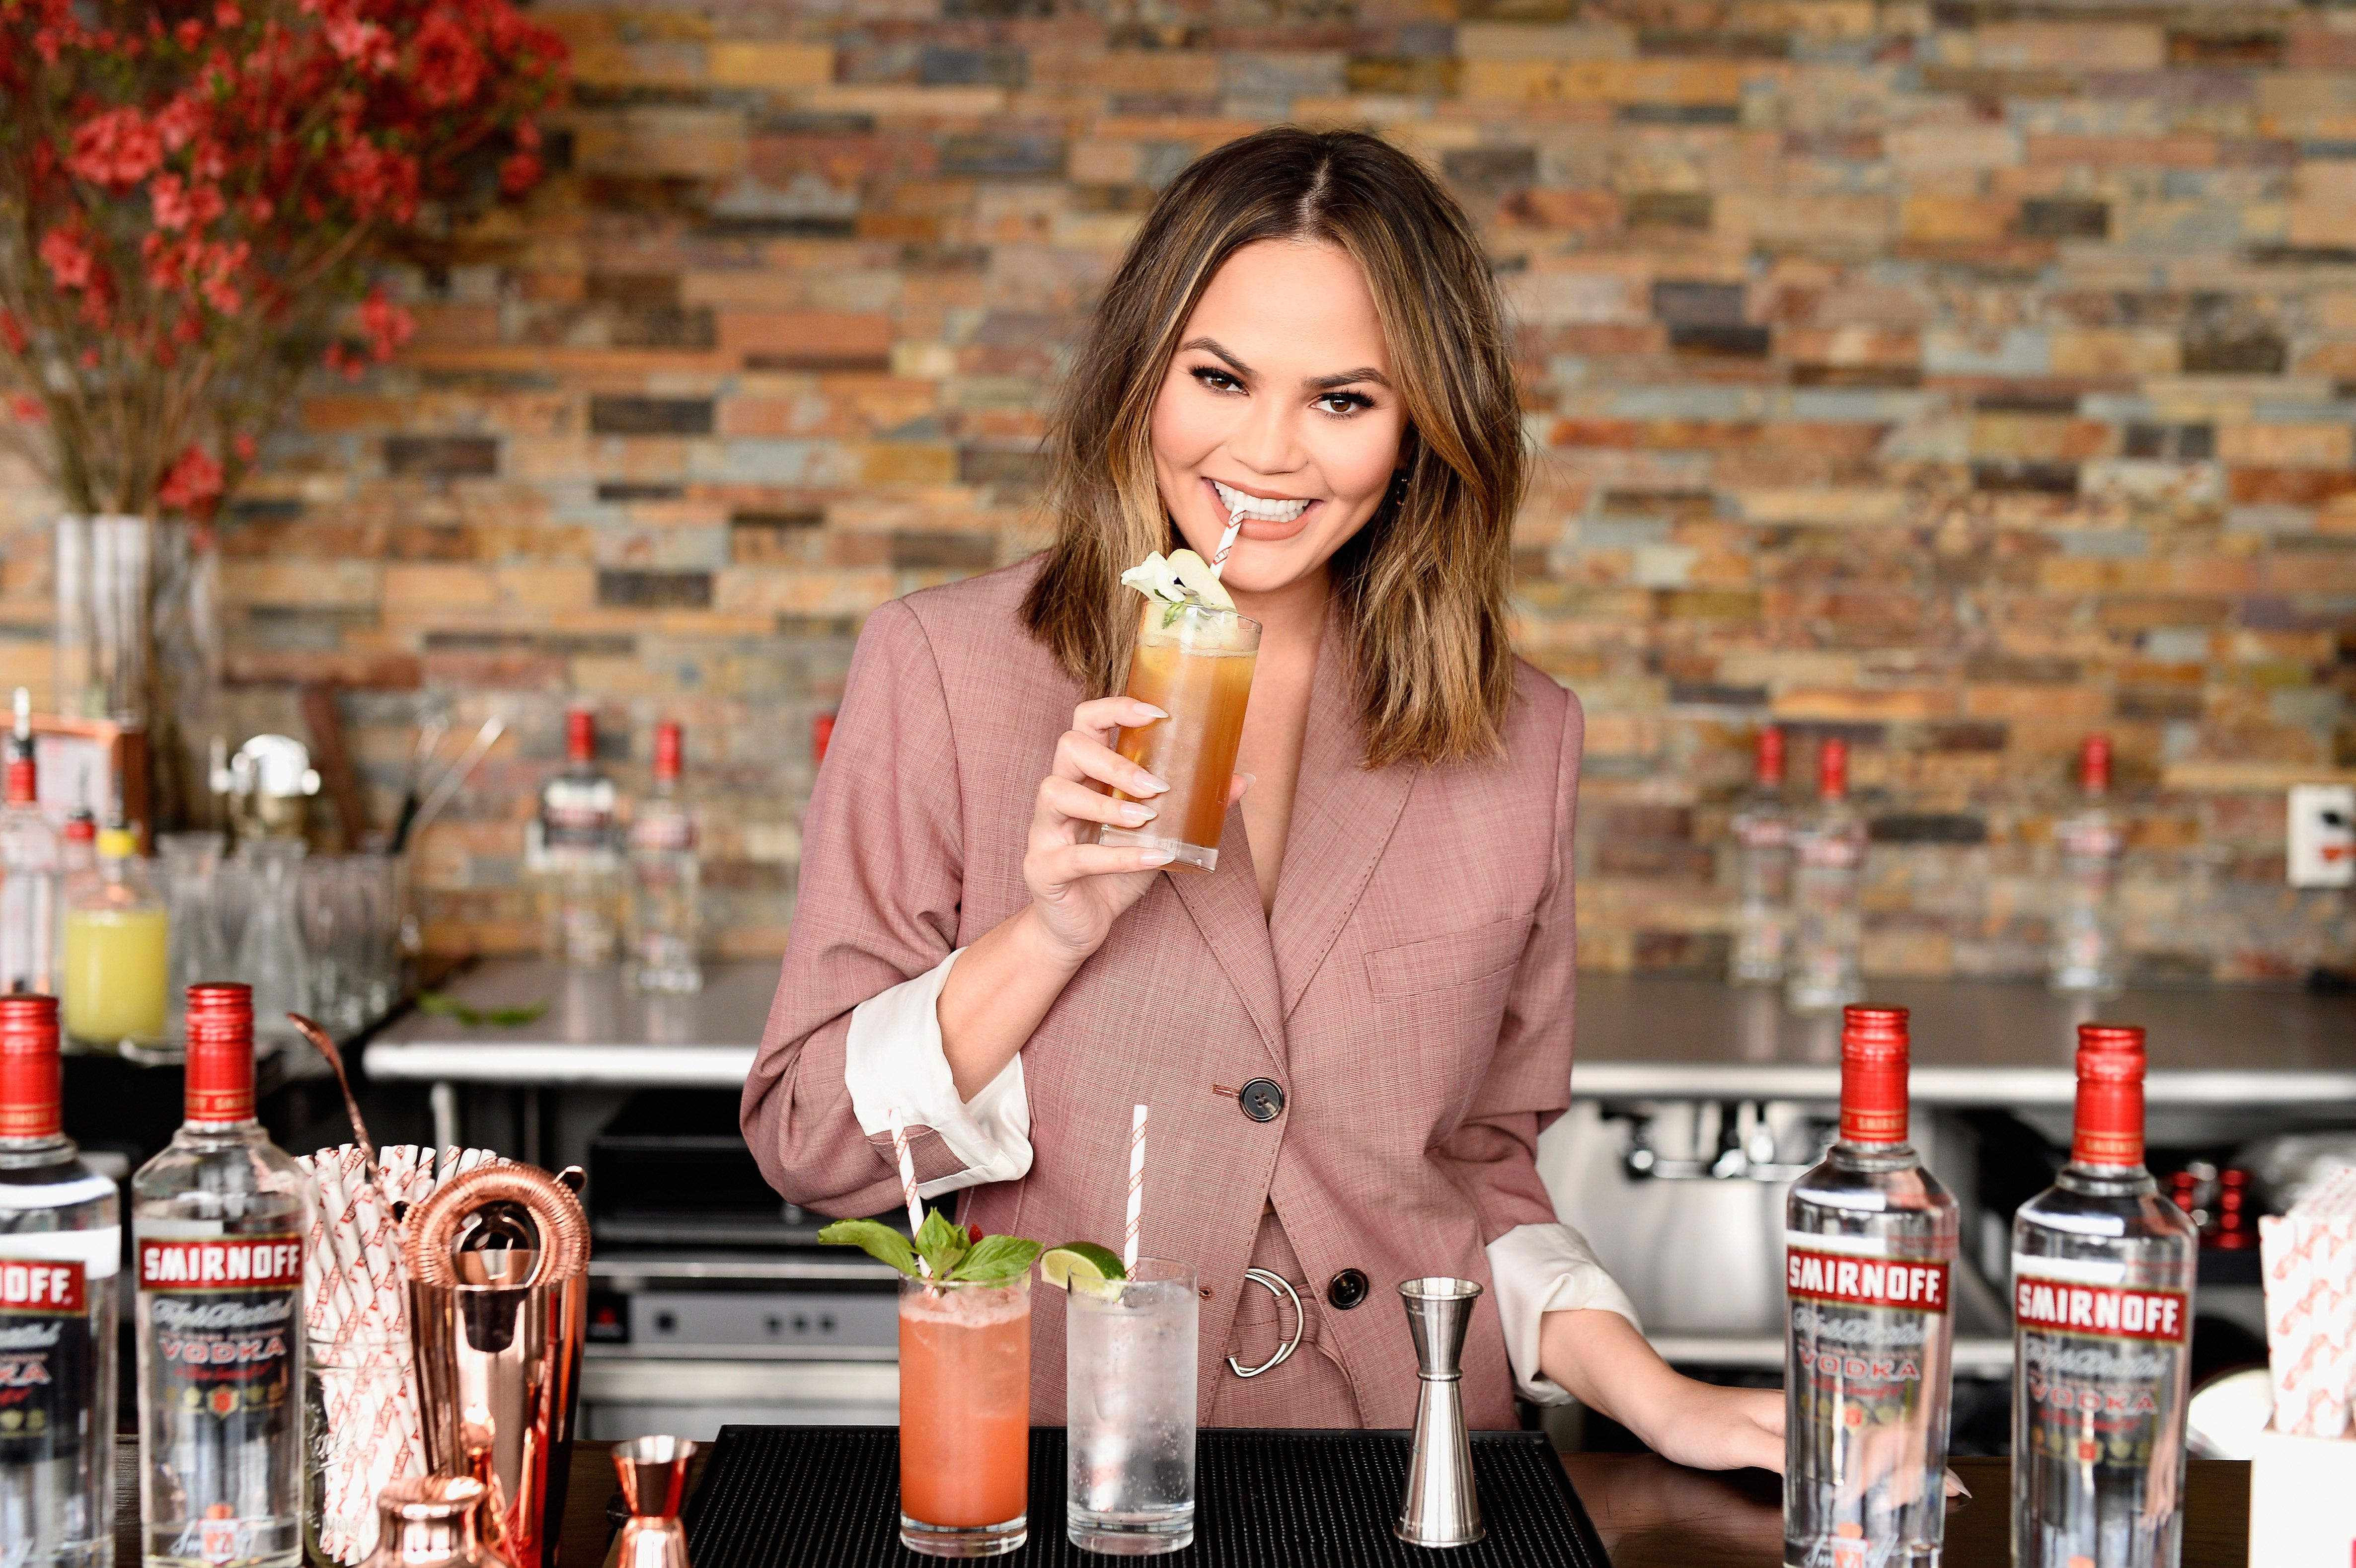 Chrissy Teigen hosts a 'Cocktails with Chrissy' with Smirnoff.